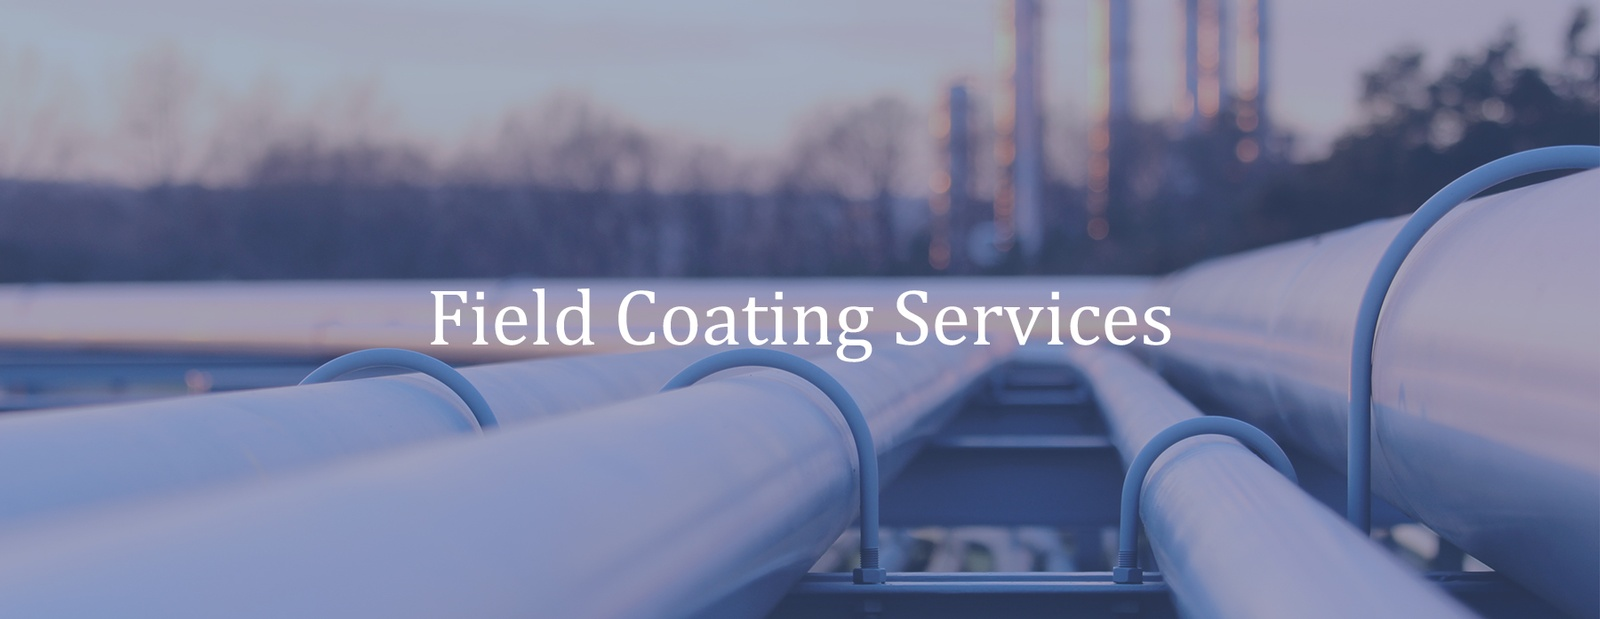 Field Coating Services